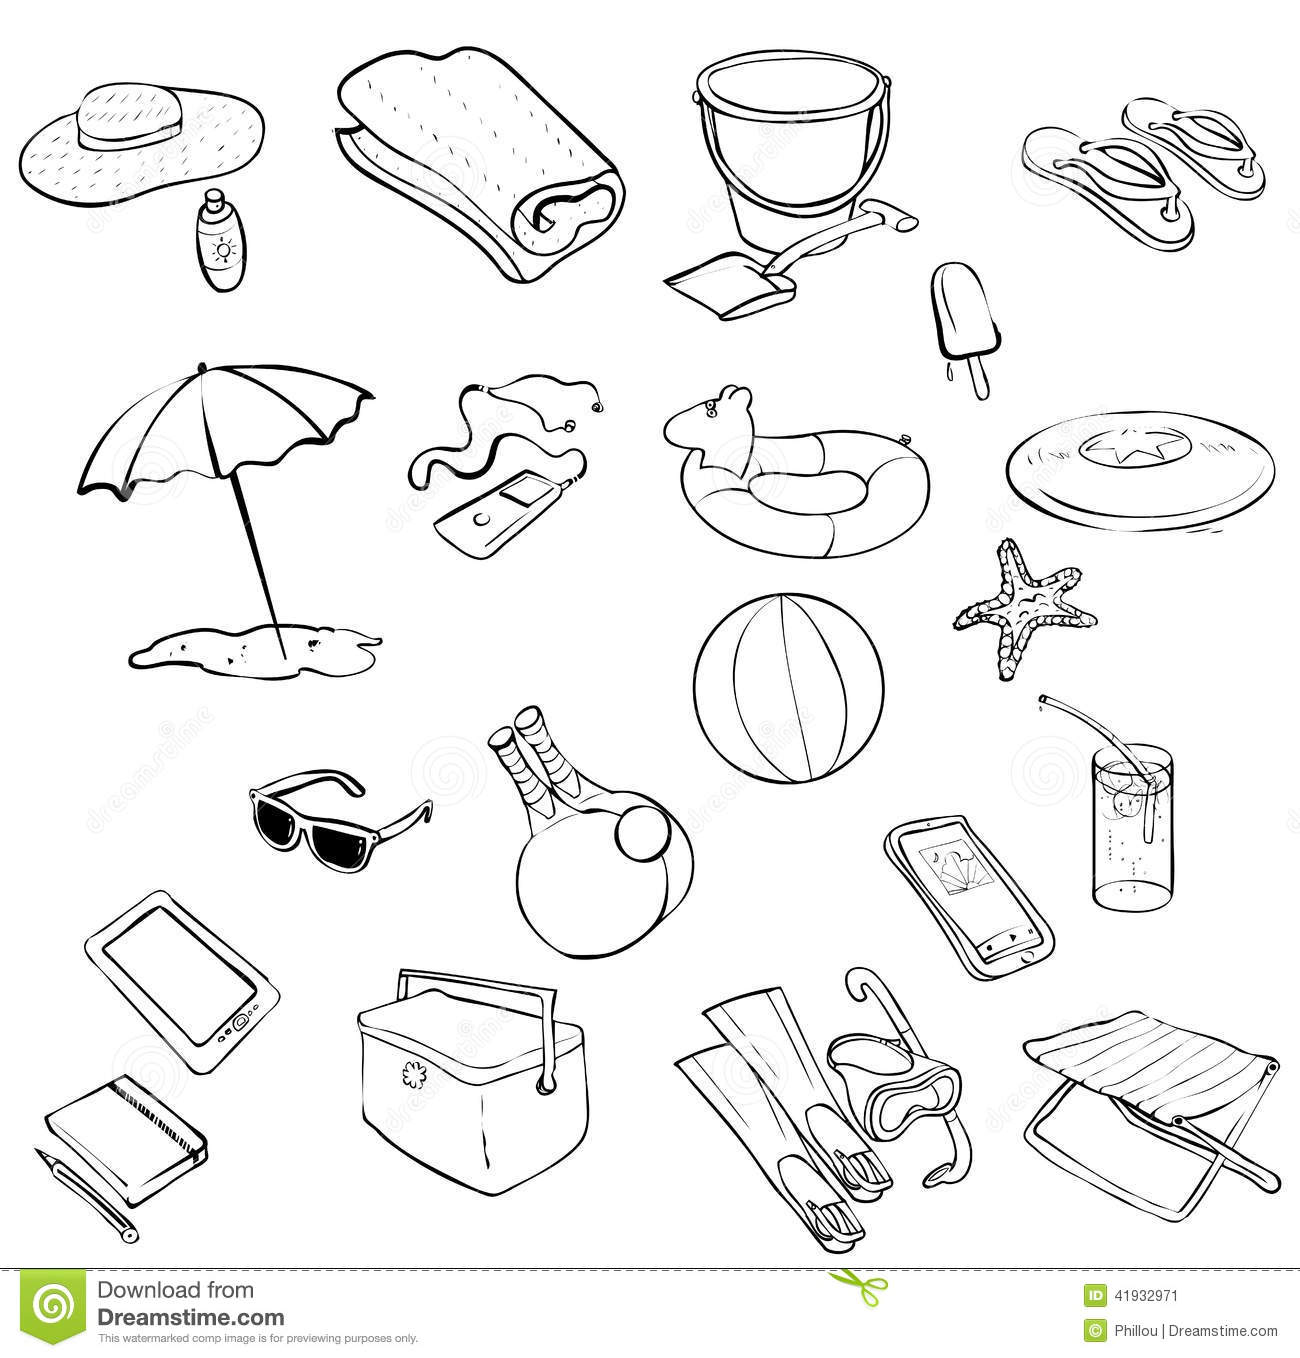 Galerry coloring pages of beach items